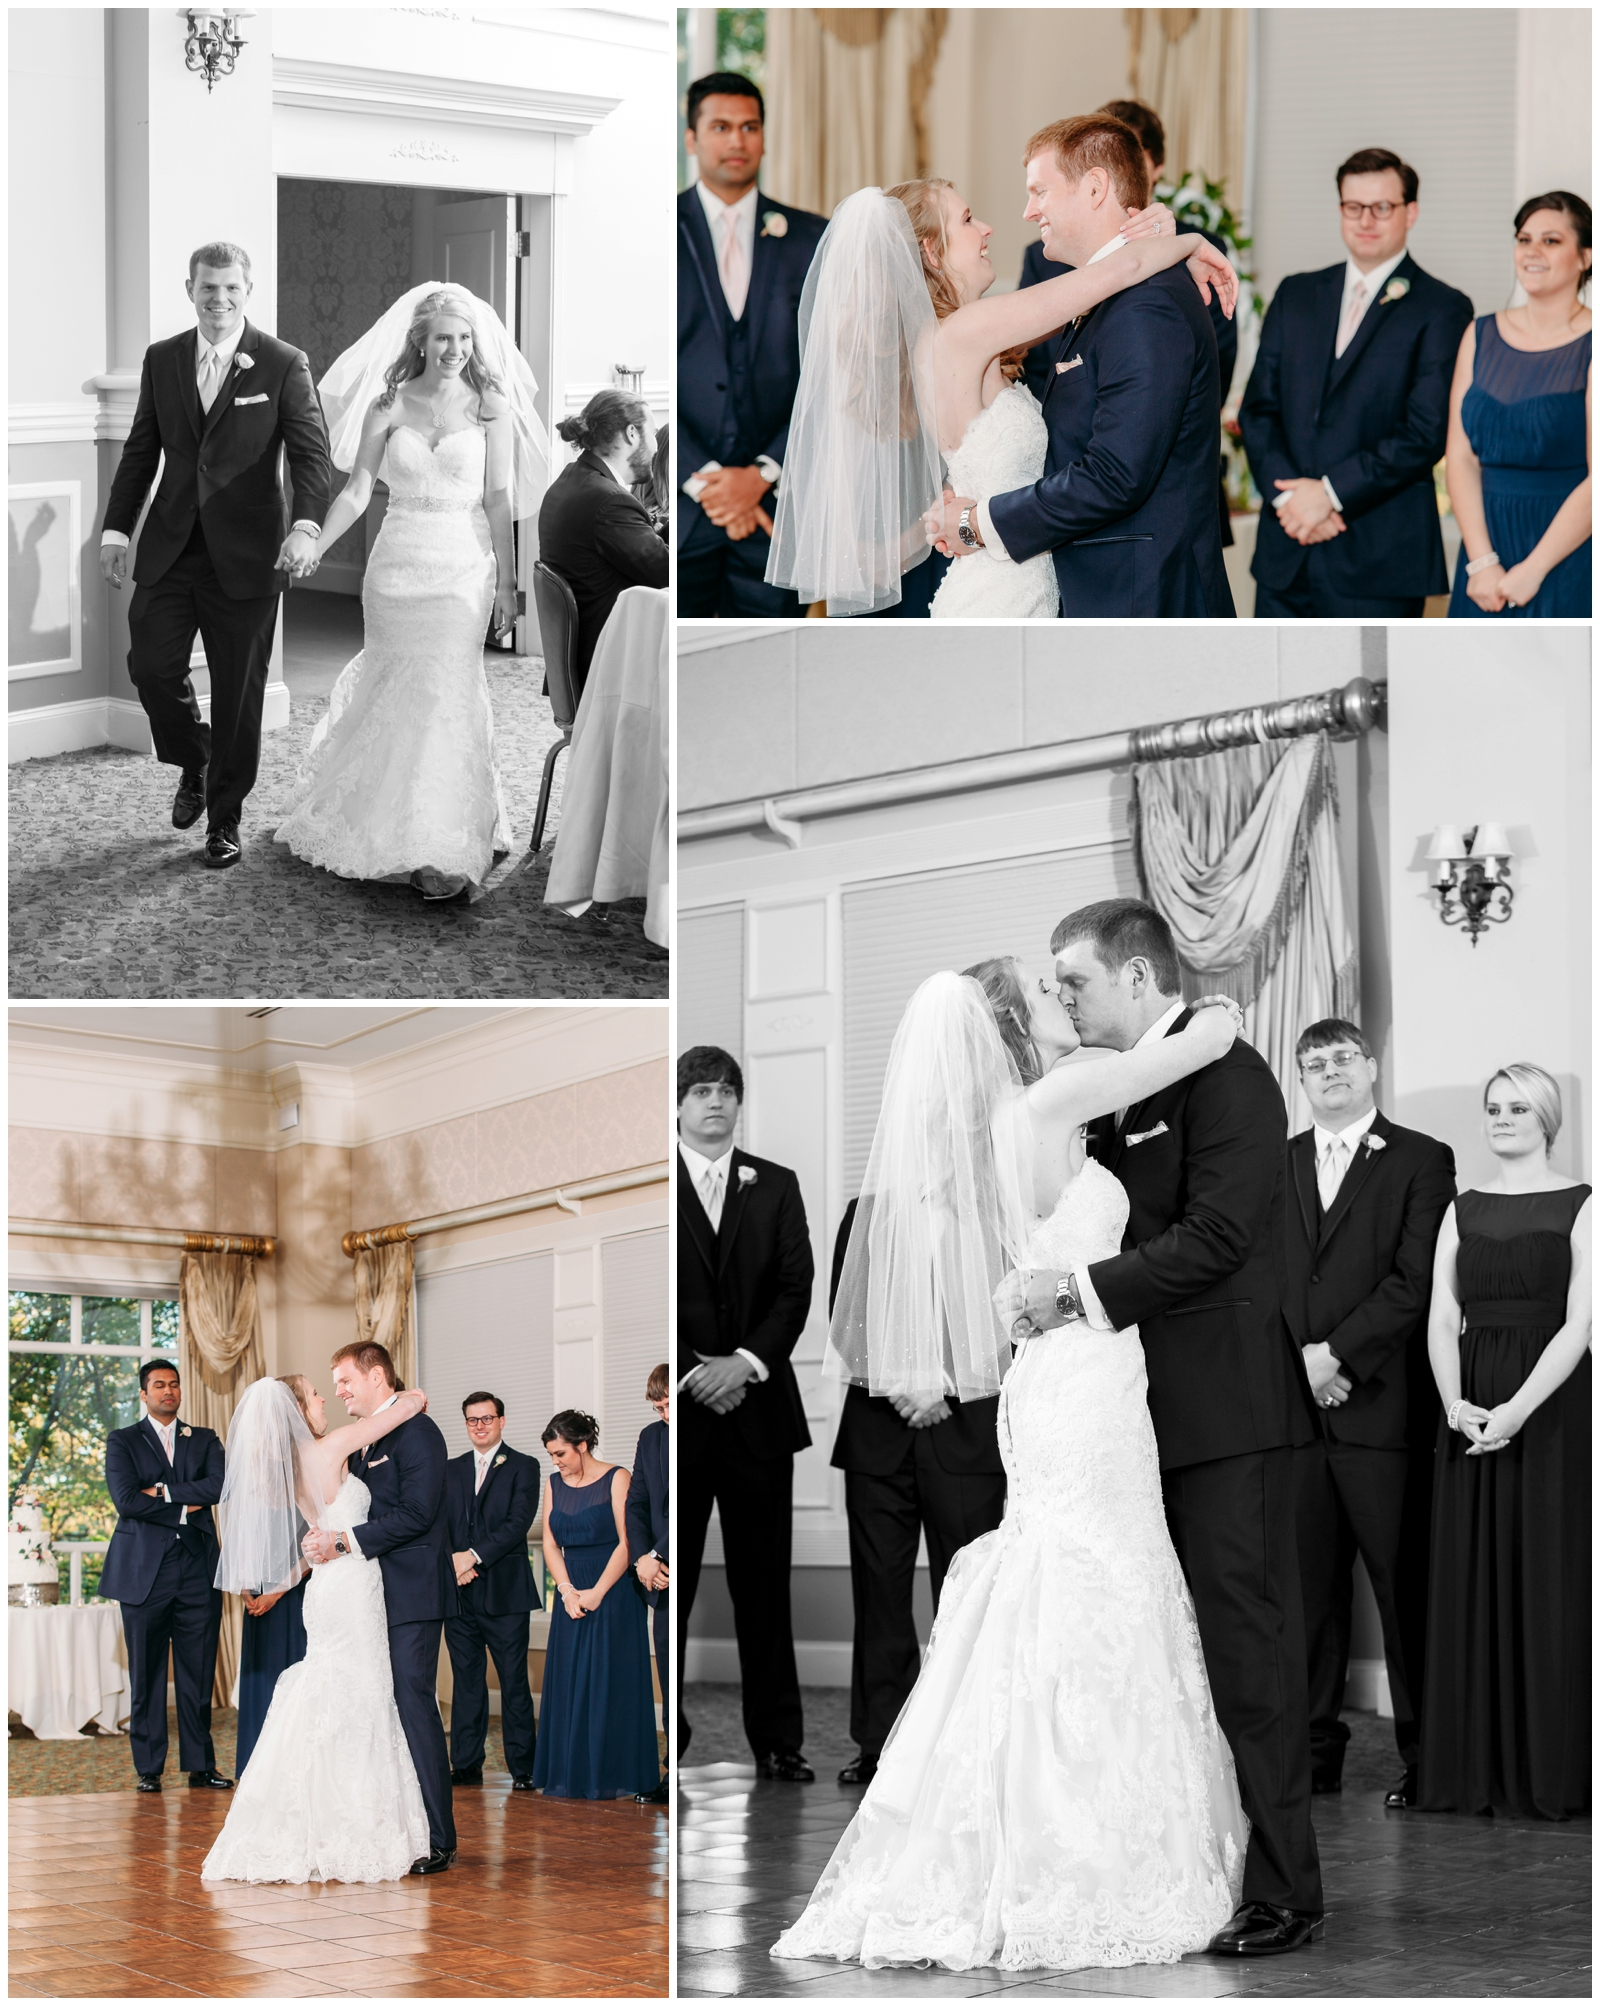 Morgan & Kyle_RoswellWedding_ArdentStory_0034